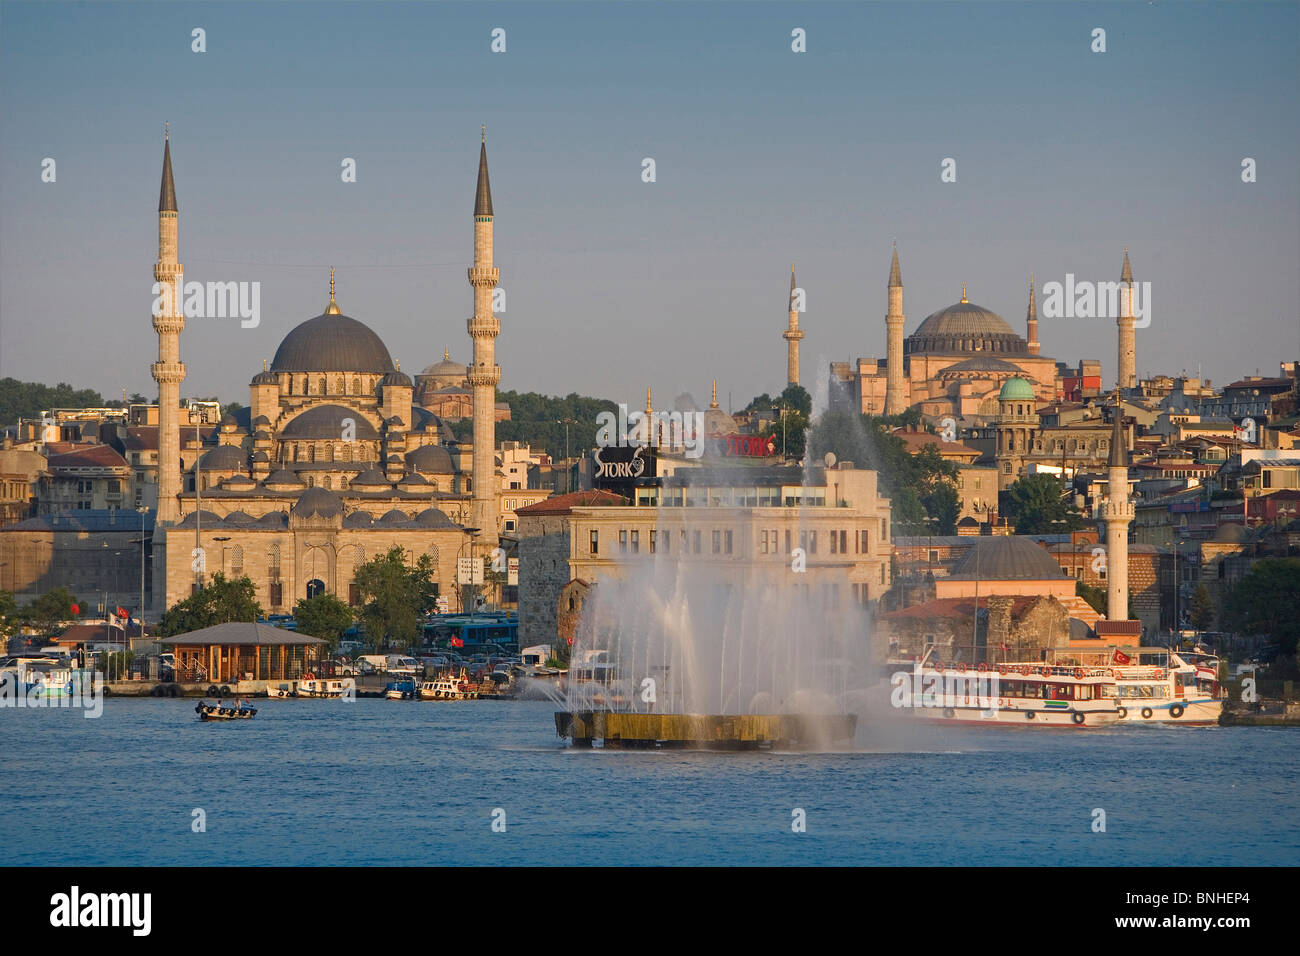 Turkey June 2008 Istanbul city Golden Horn Mosques Fountain Coast See - Stock Image